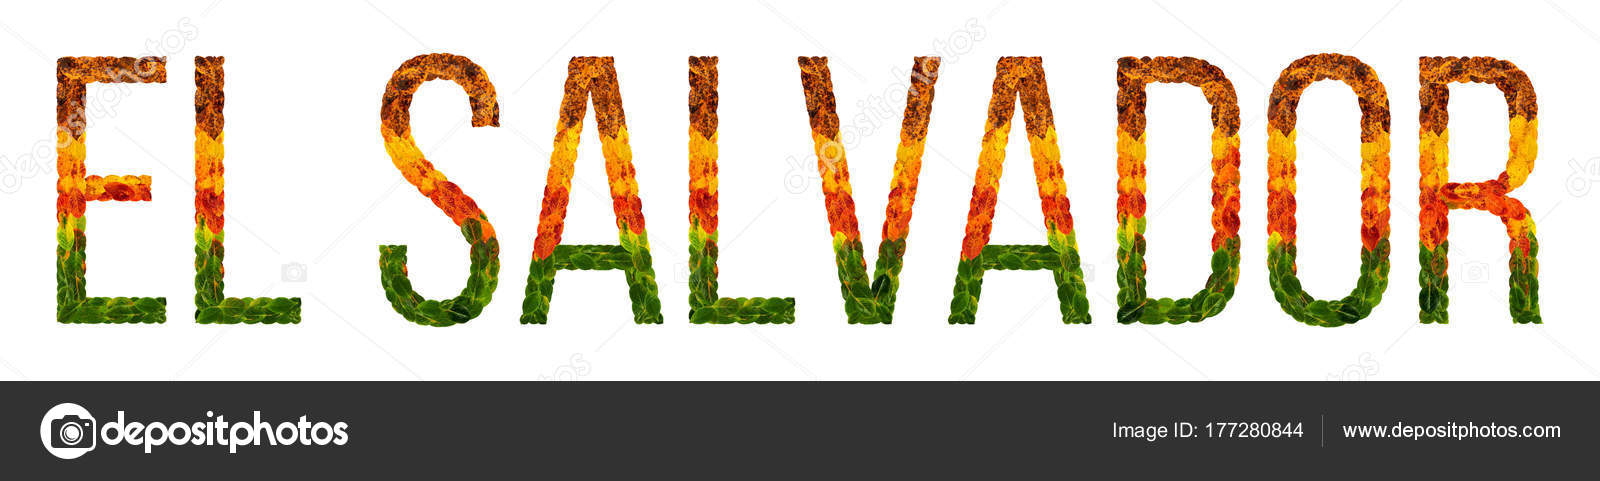 Word El Salvador Country Is Written With Leaves On A White Insulated